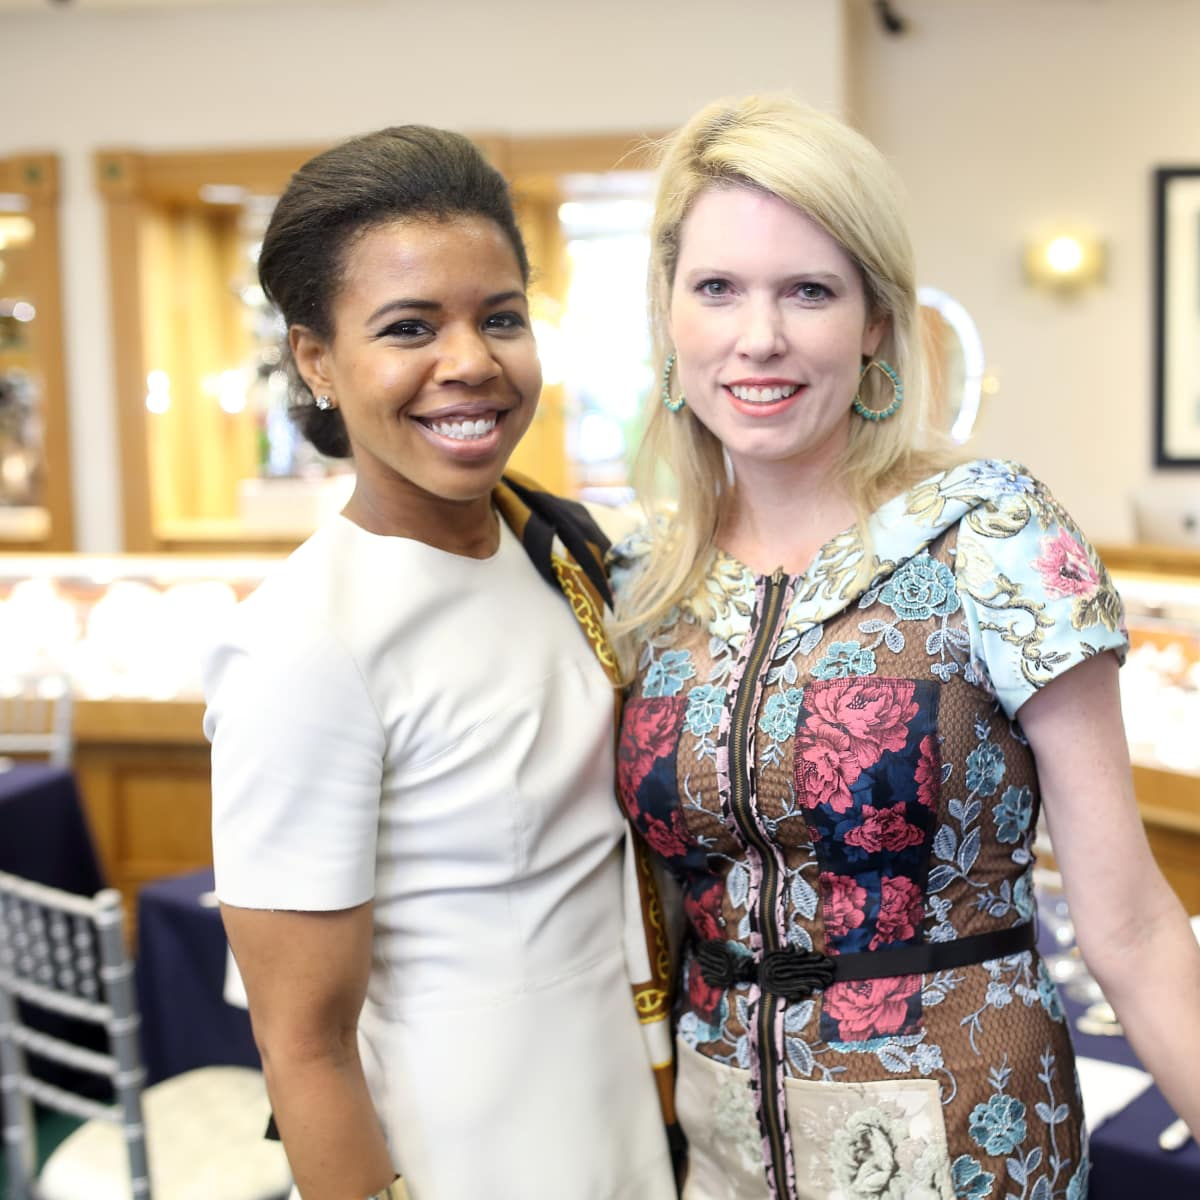 Houston, Una Notte kickoff party, October 2015, Claire Thielke, Courtney Toomey